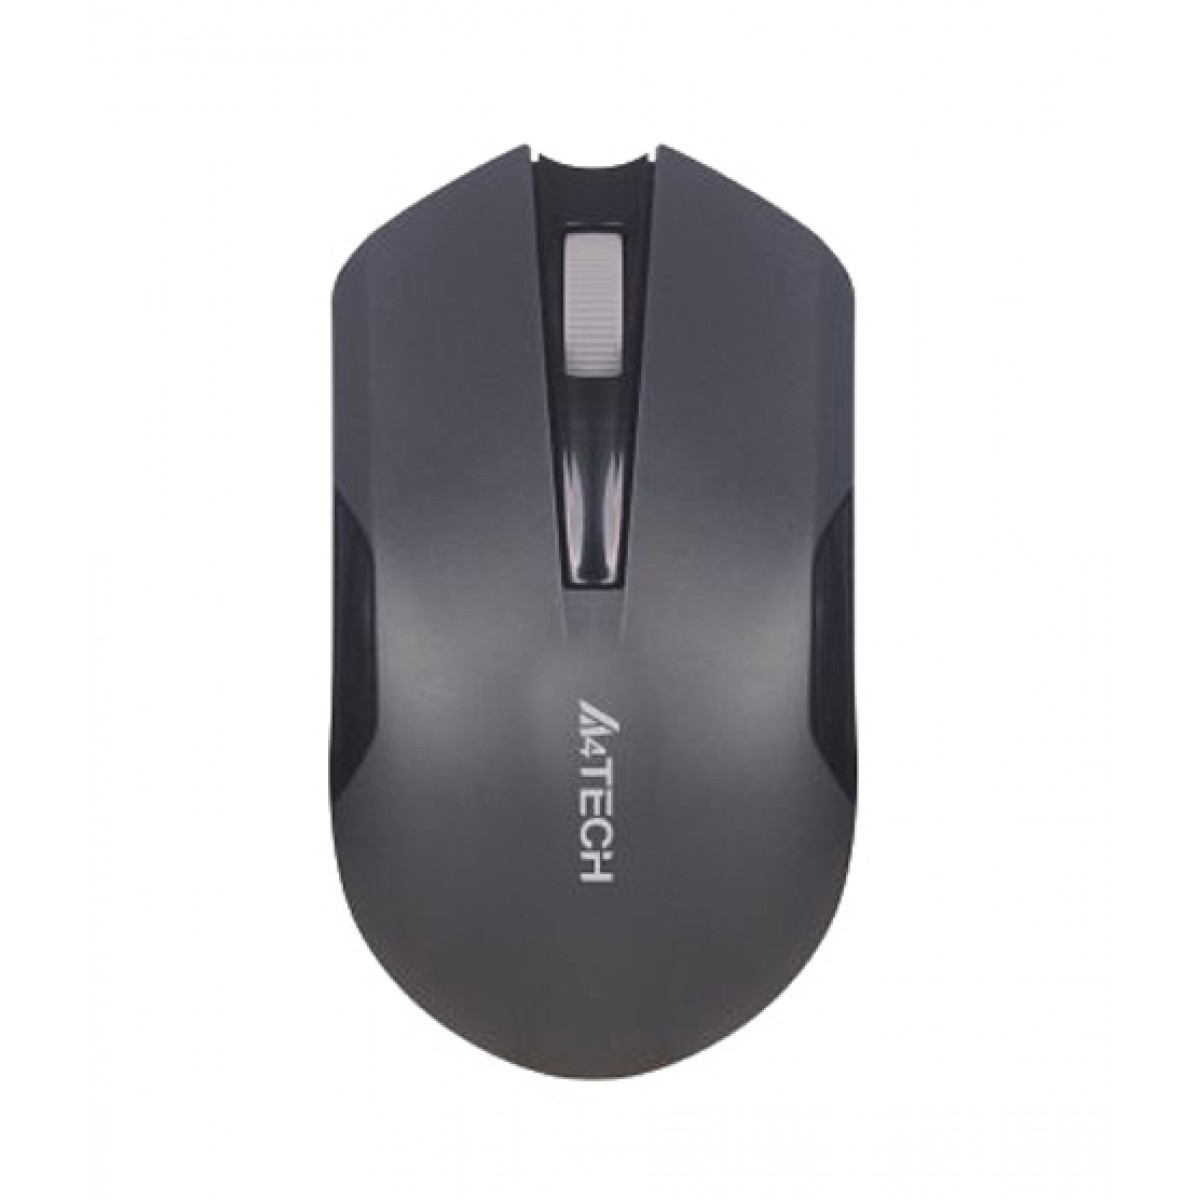 A4TECH OK-521 MOUSE DRIVERS FOR WINDOWS DOWNLOAD